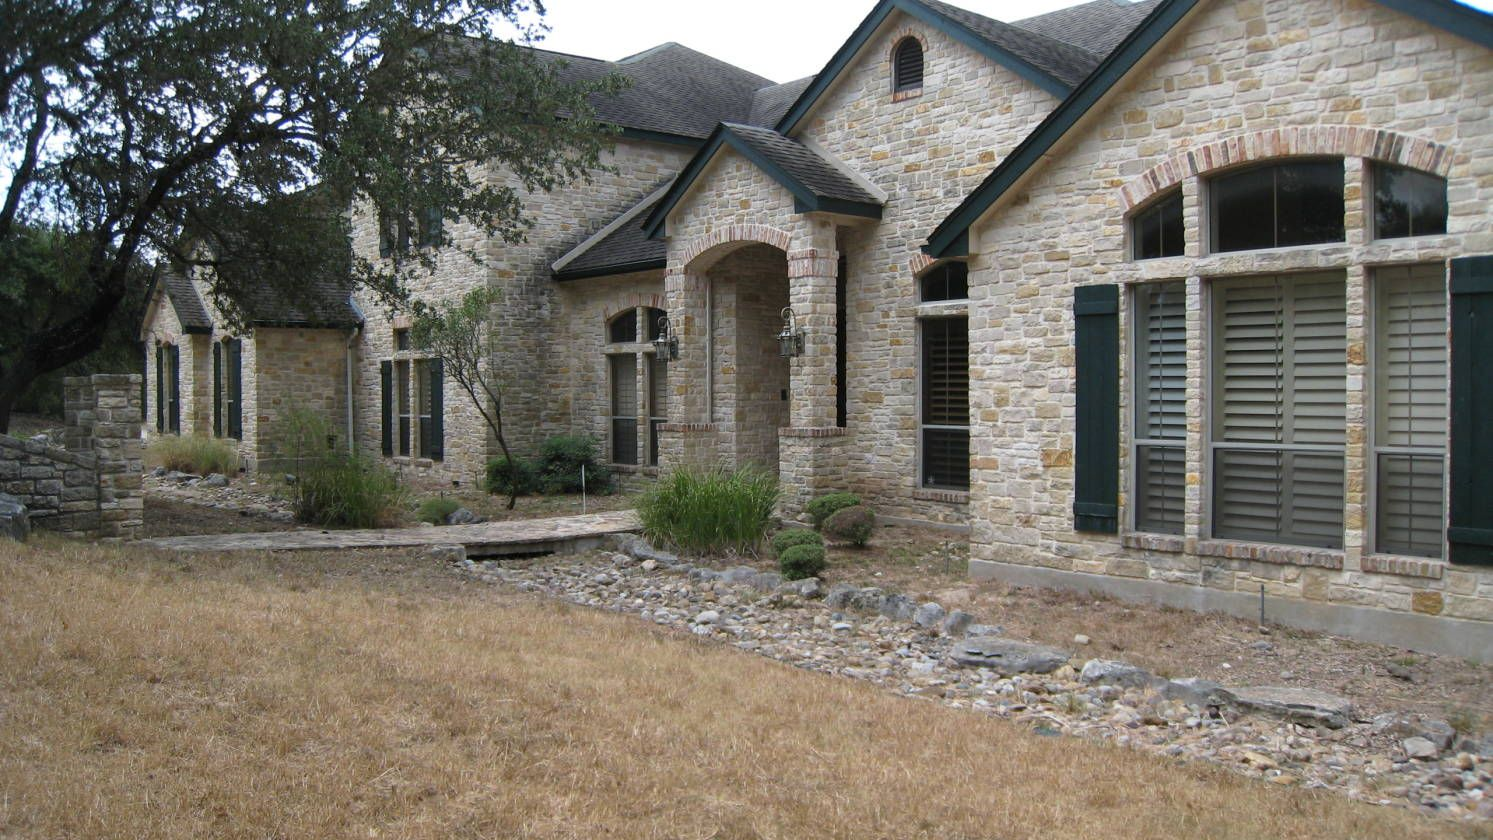 Equestrian Estate for sale in Bexar County in Texas  An